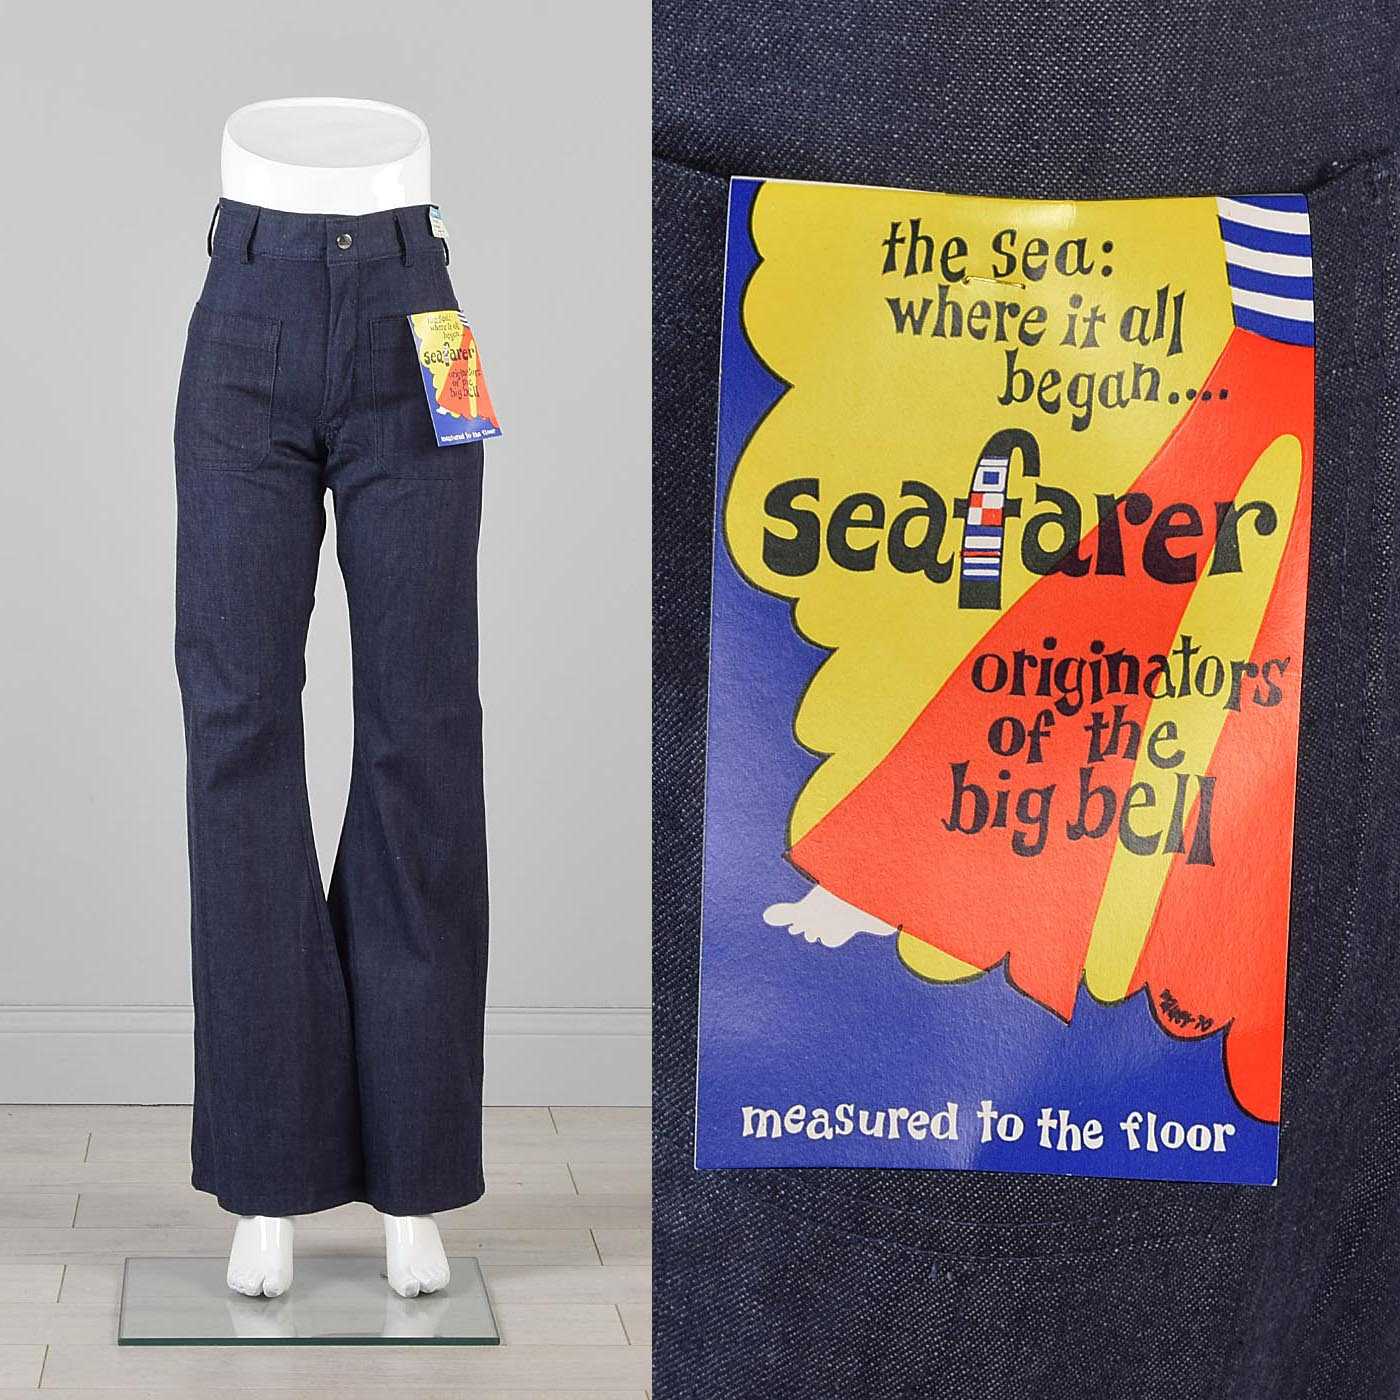 30x34.25 Deadstock Seafarer Jeans  High Waist Indigo Denim